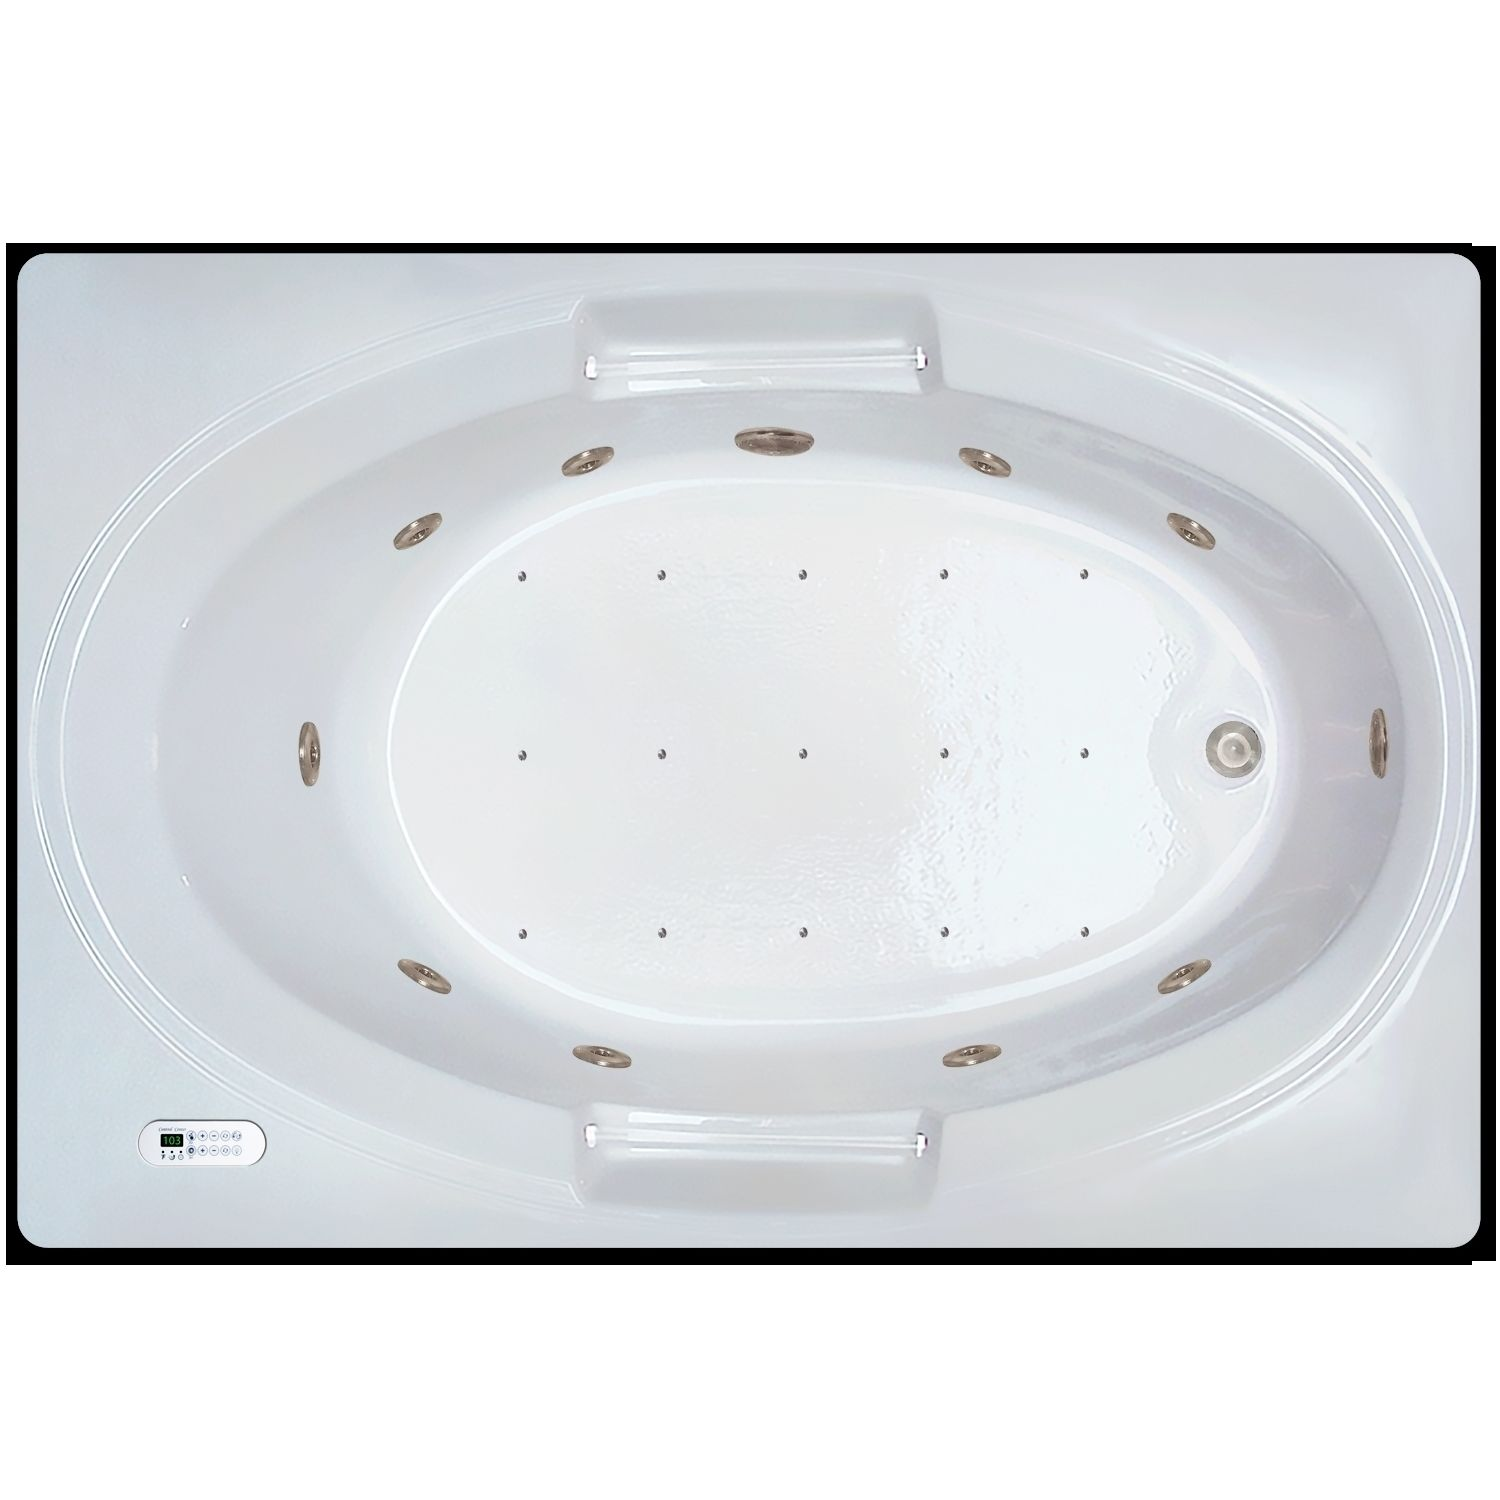 Signature Bath White Acrylic 60-inch x 42-inch x 18-inch Drop-in ...